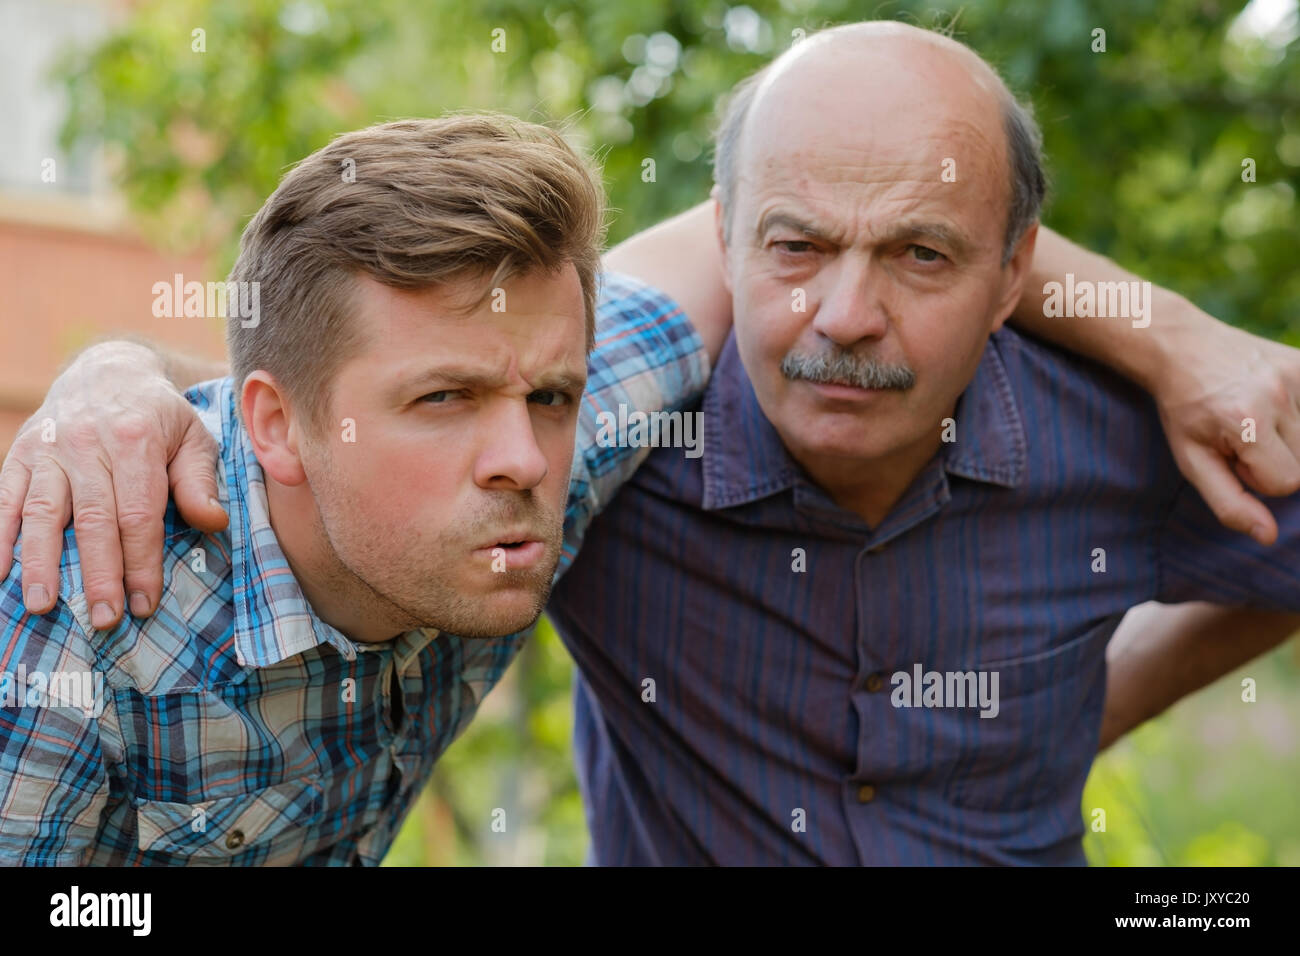 Portrait of doubting men. Dad and son look forward and frown - Stock Image